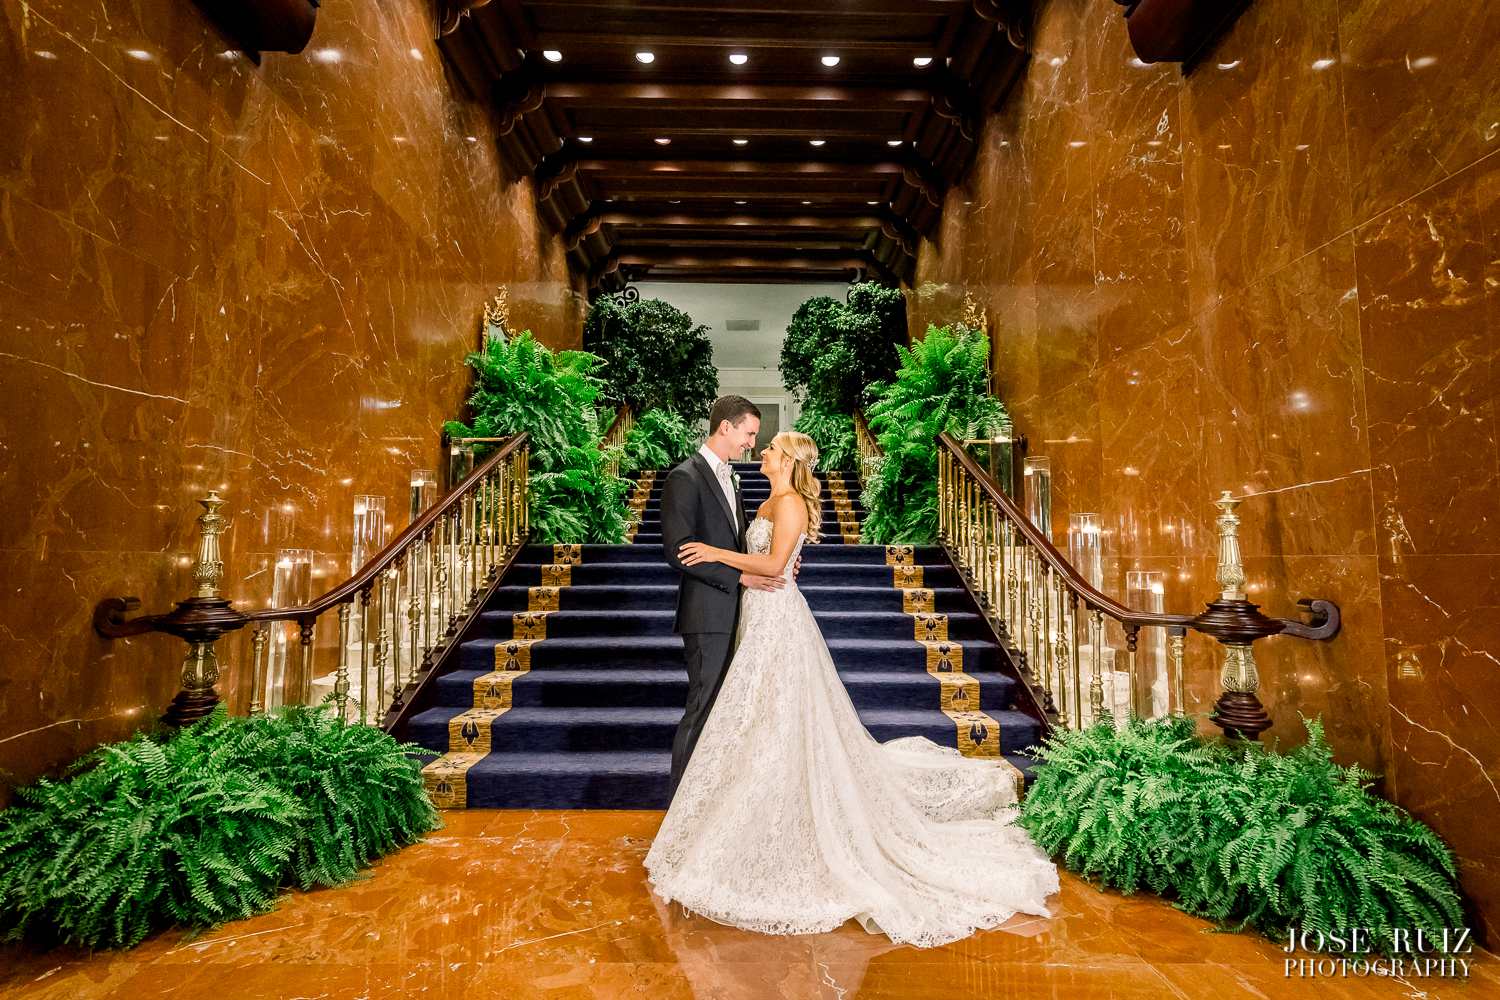 Jose Ruiz Photography- Carolina & Gabo Wedding Day-0192.jpg